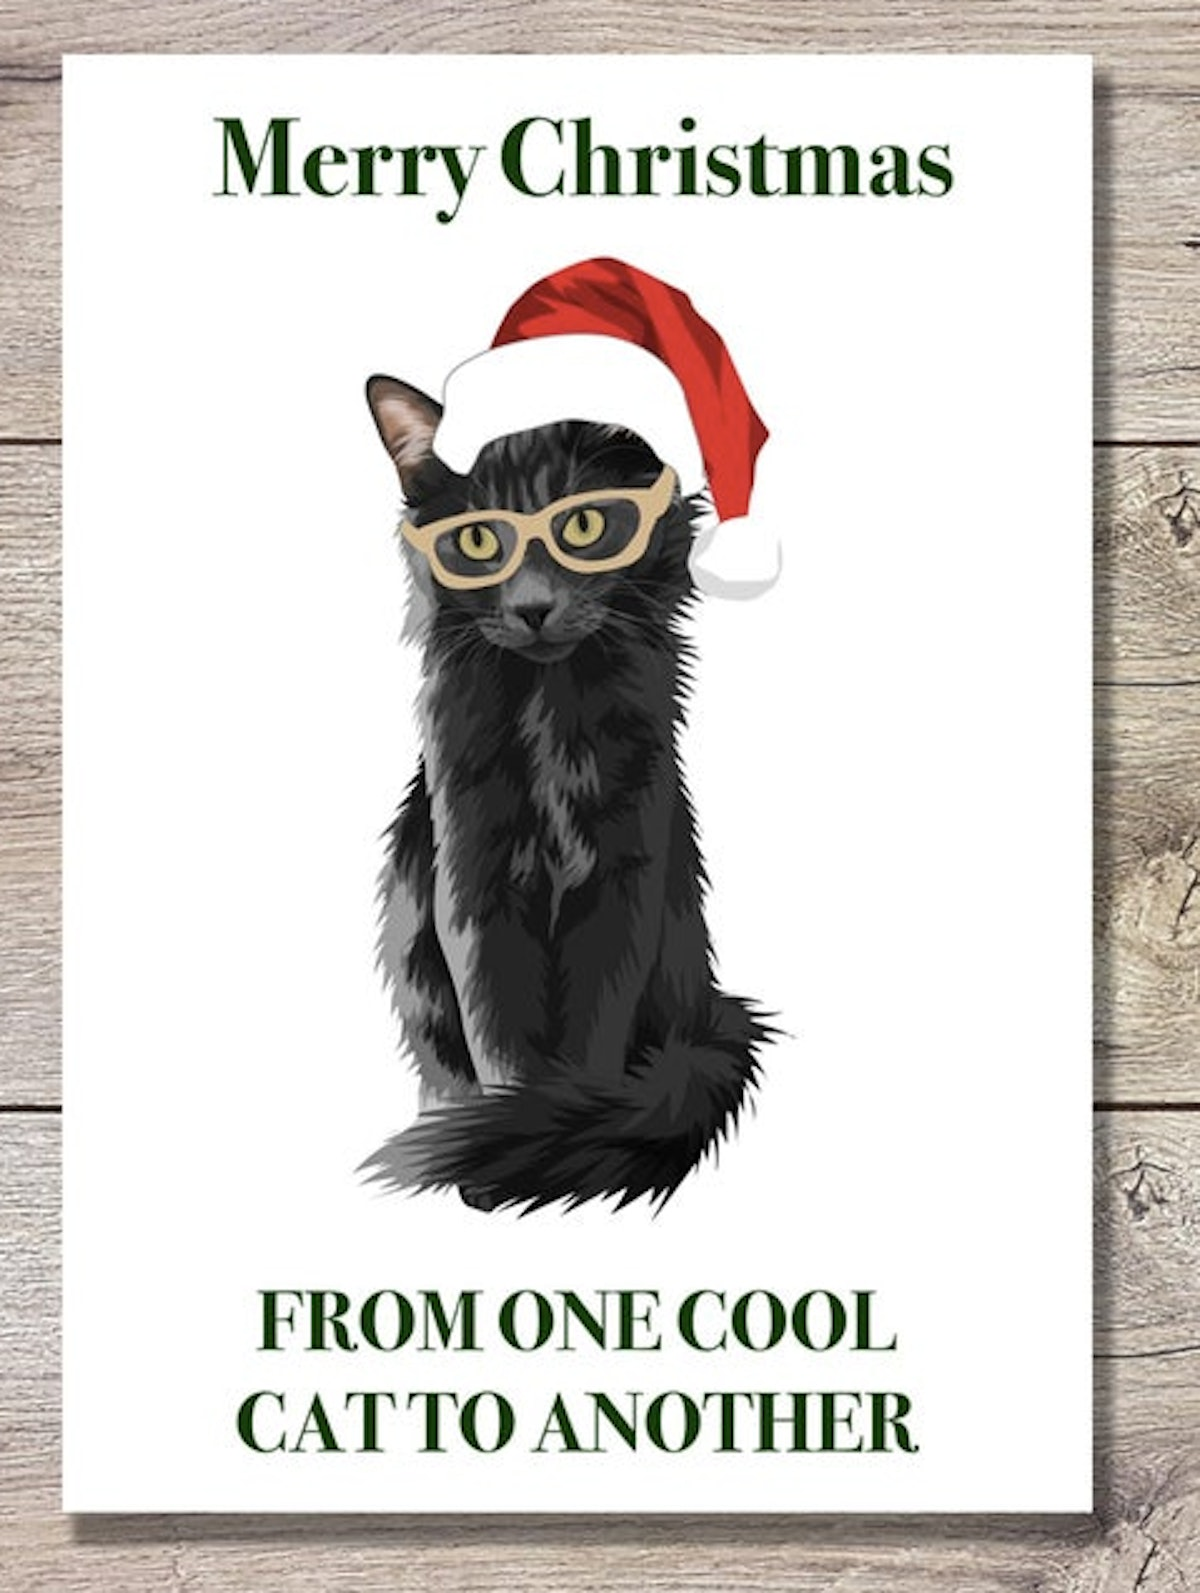 Printable Christmas Card of Funny Cat